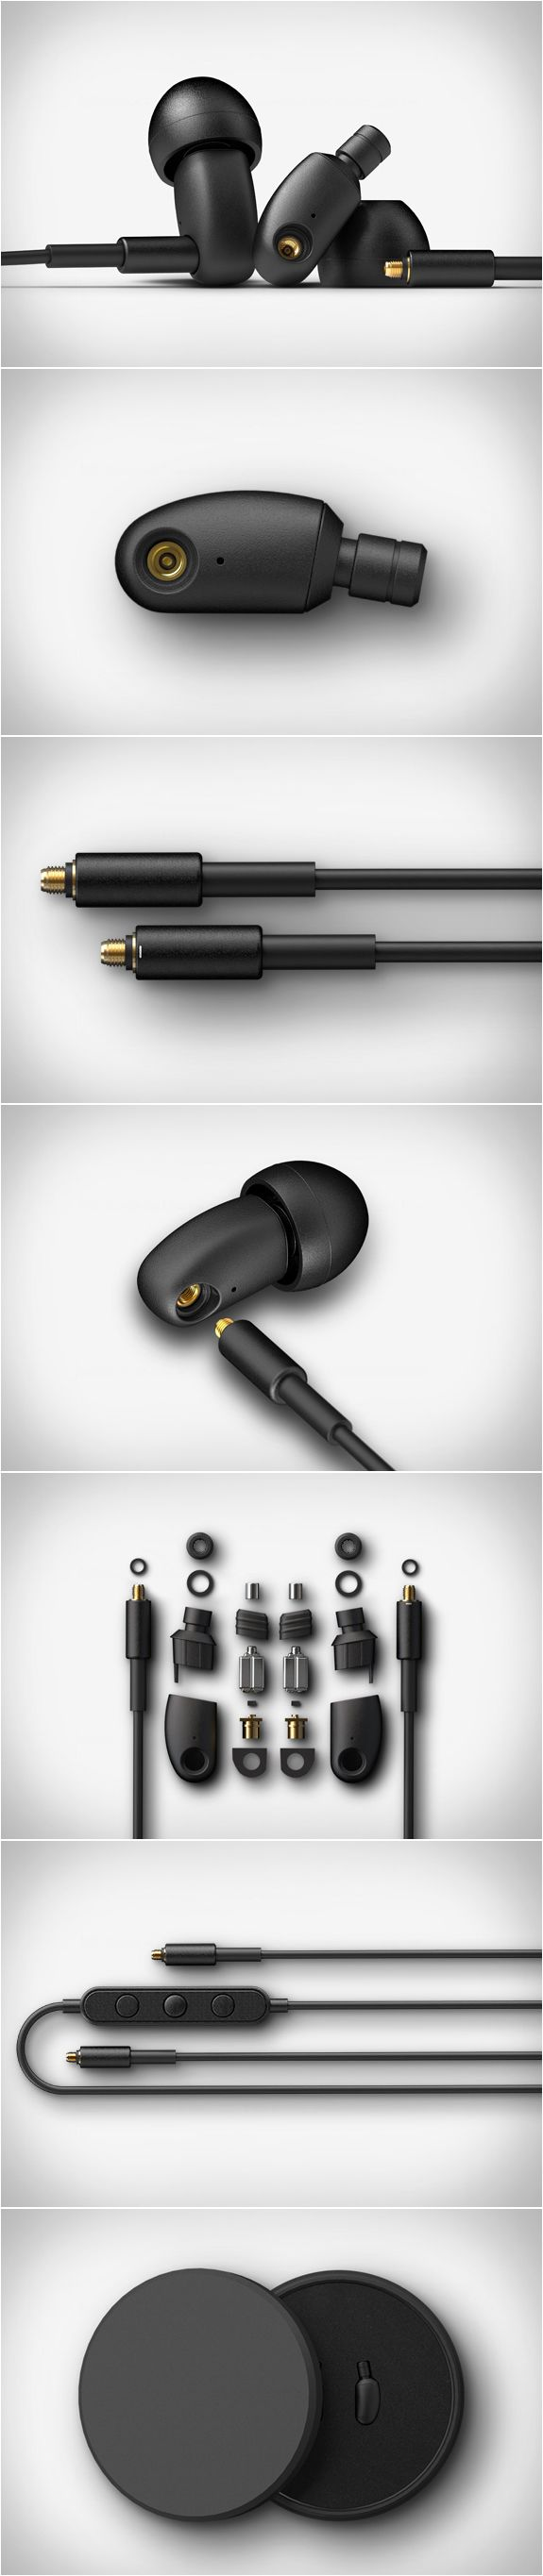 Q-JAYS EARPHONES Q-JAYS are the newest and one of the smallest earbuds on the market. They aim to be the highest quality earphones on sale, developed and built in Sweden.  https://www.jays.se/products/q-jays